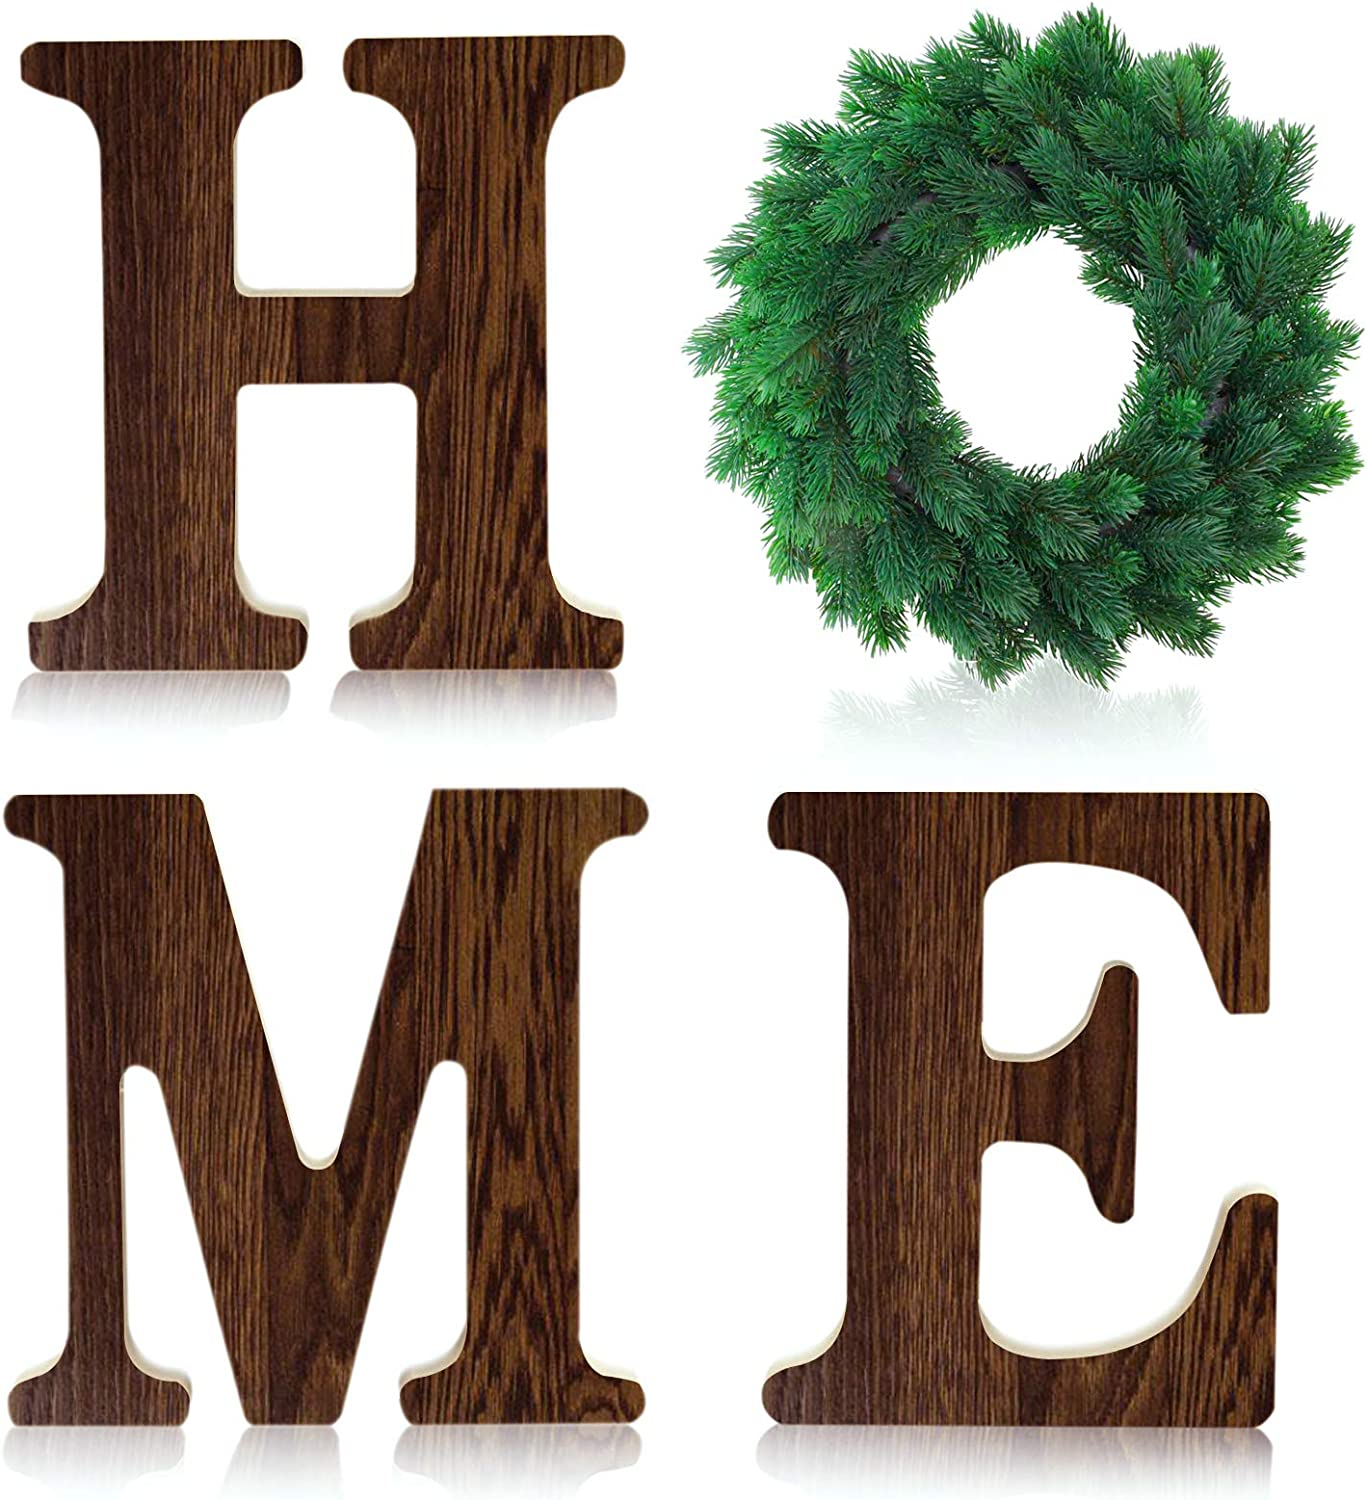 Wooden Home Letters 12 Inch Rustic Home Sign with Wreath Farmhouse Decor for Home Wall Decoration - Self-Adhesive Wooden Home Sign